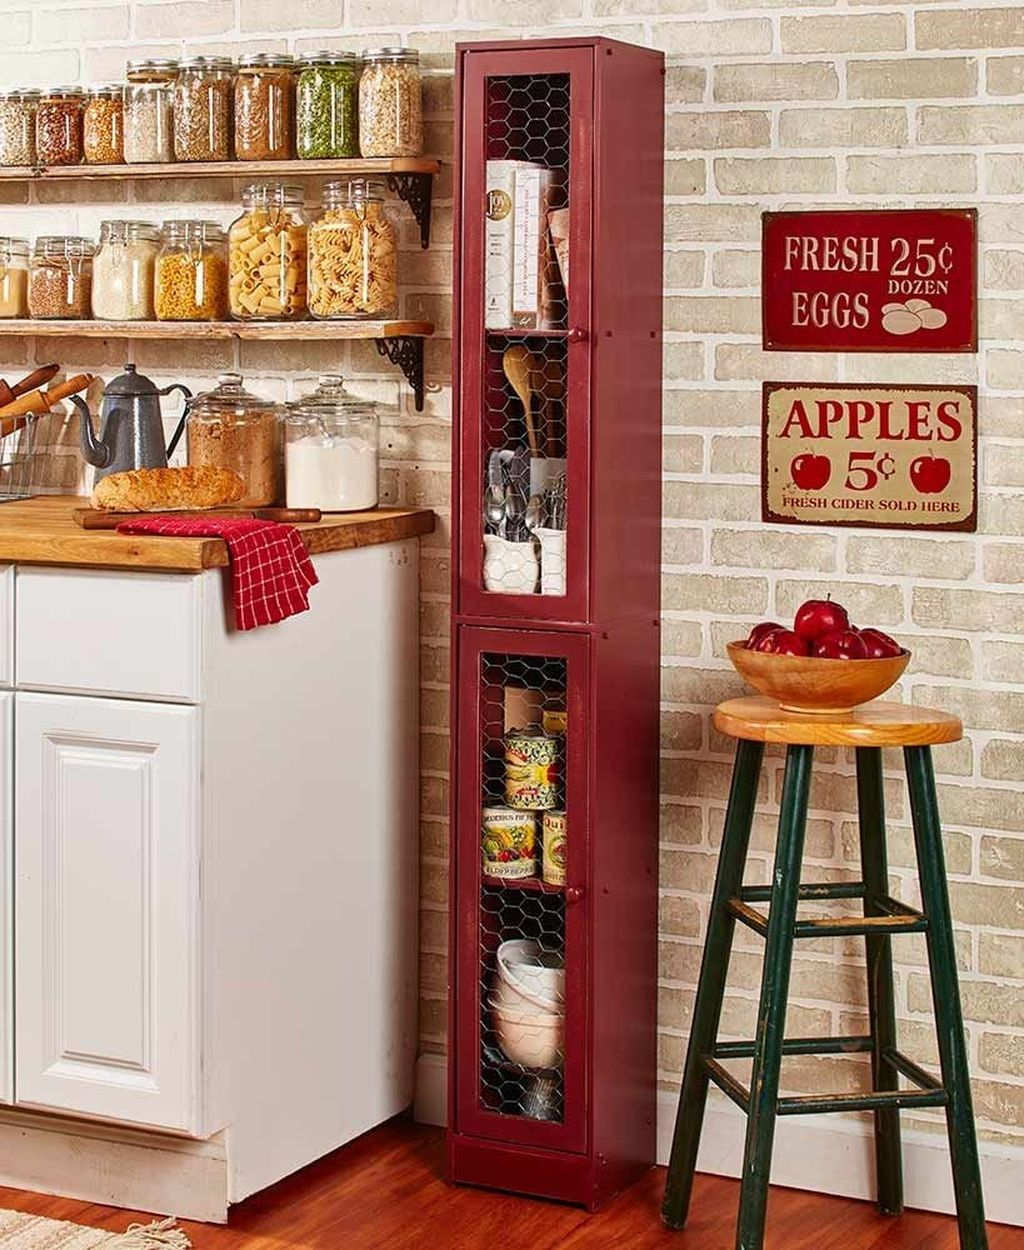 33 The Best Rustic Country Home Decor Ideas Trendehouse Country Kitchen Designs Rustic Country Kitchens Country Kitchen